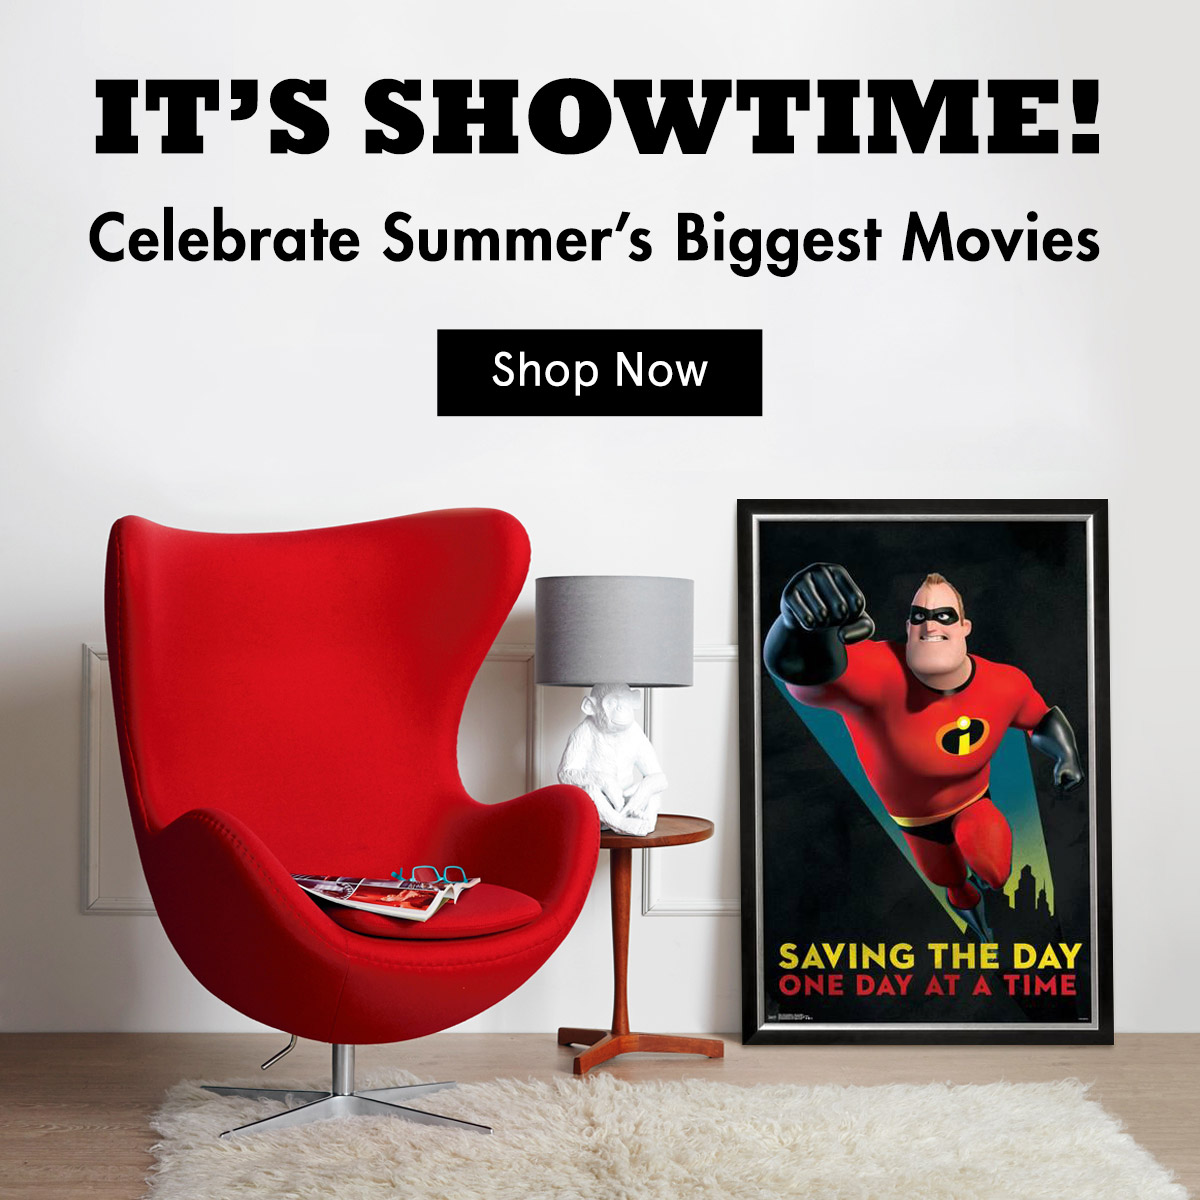 It's Showtime. Celebrate Summer's Biggest Movies. Shop Now.